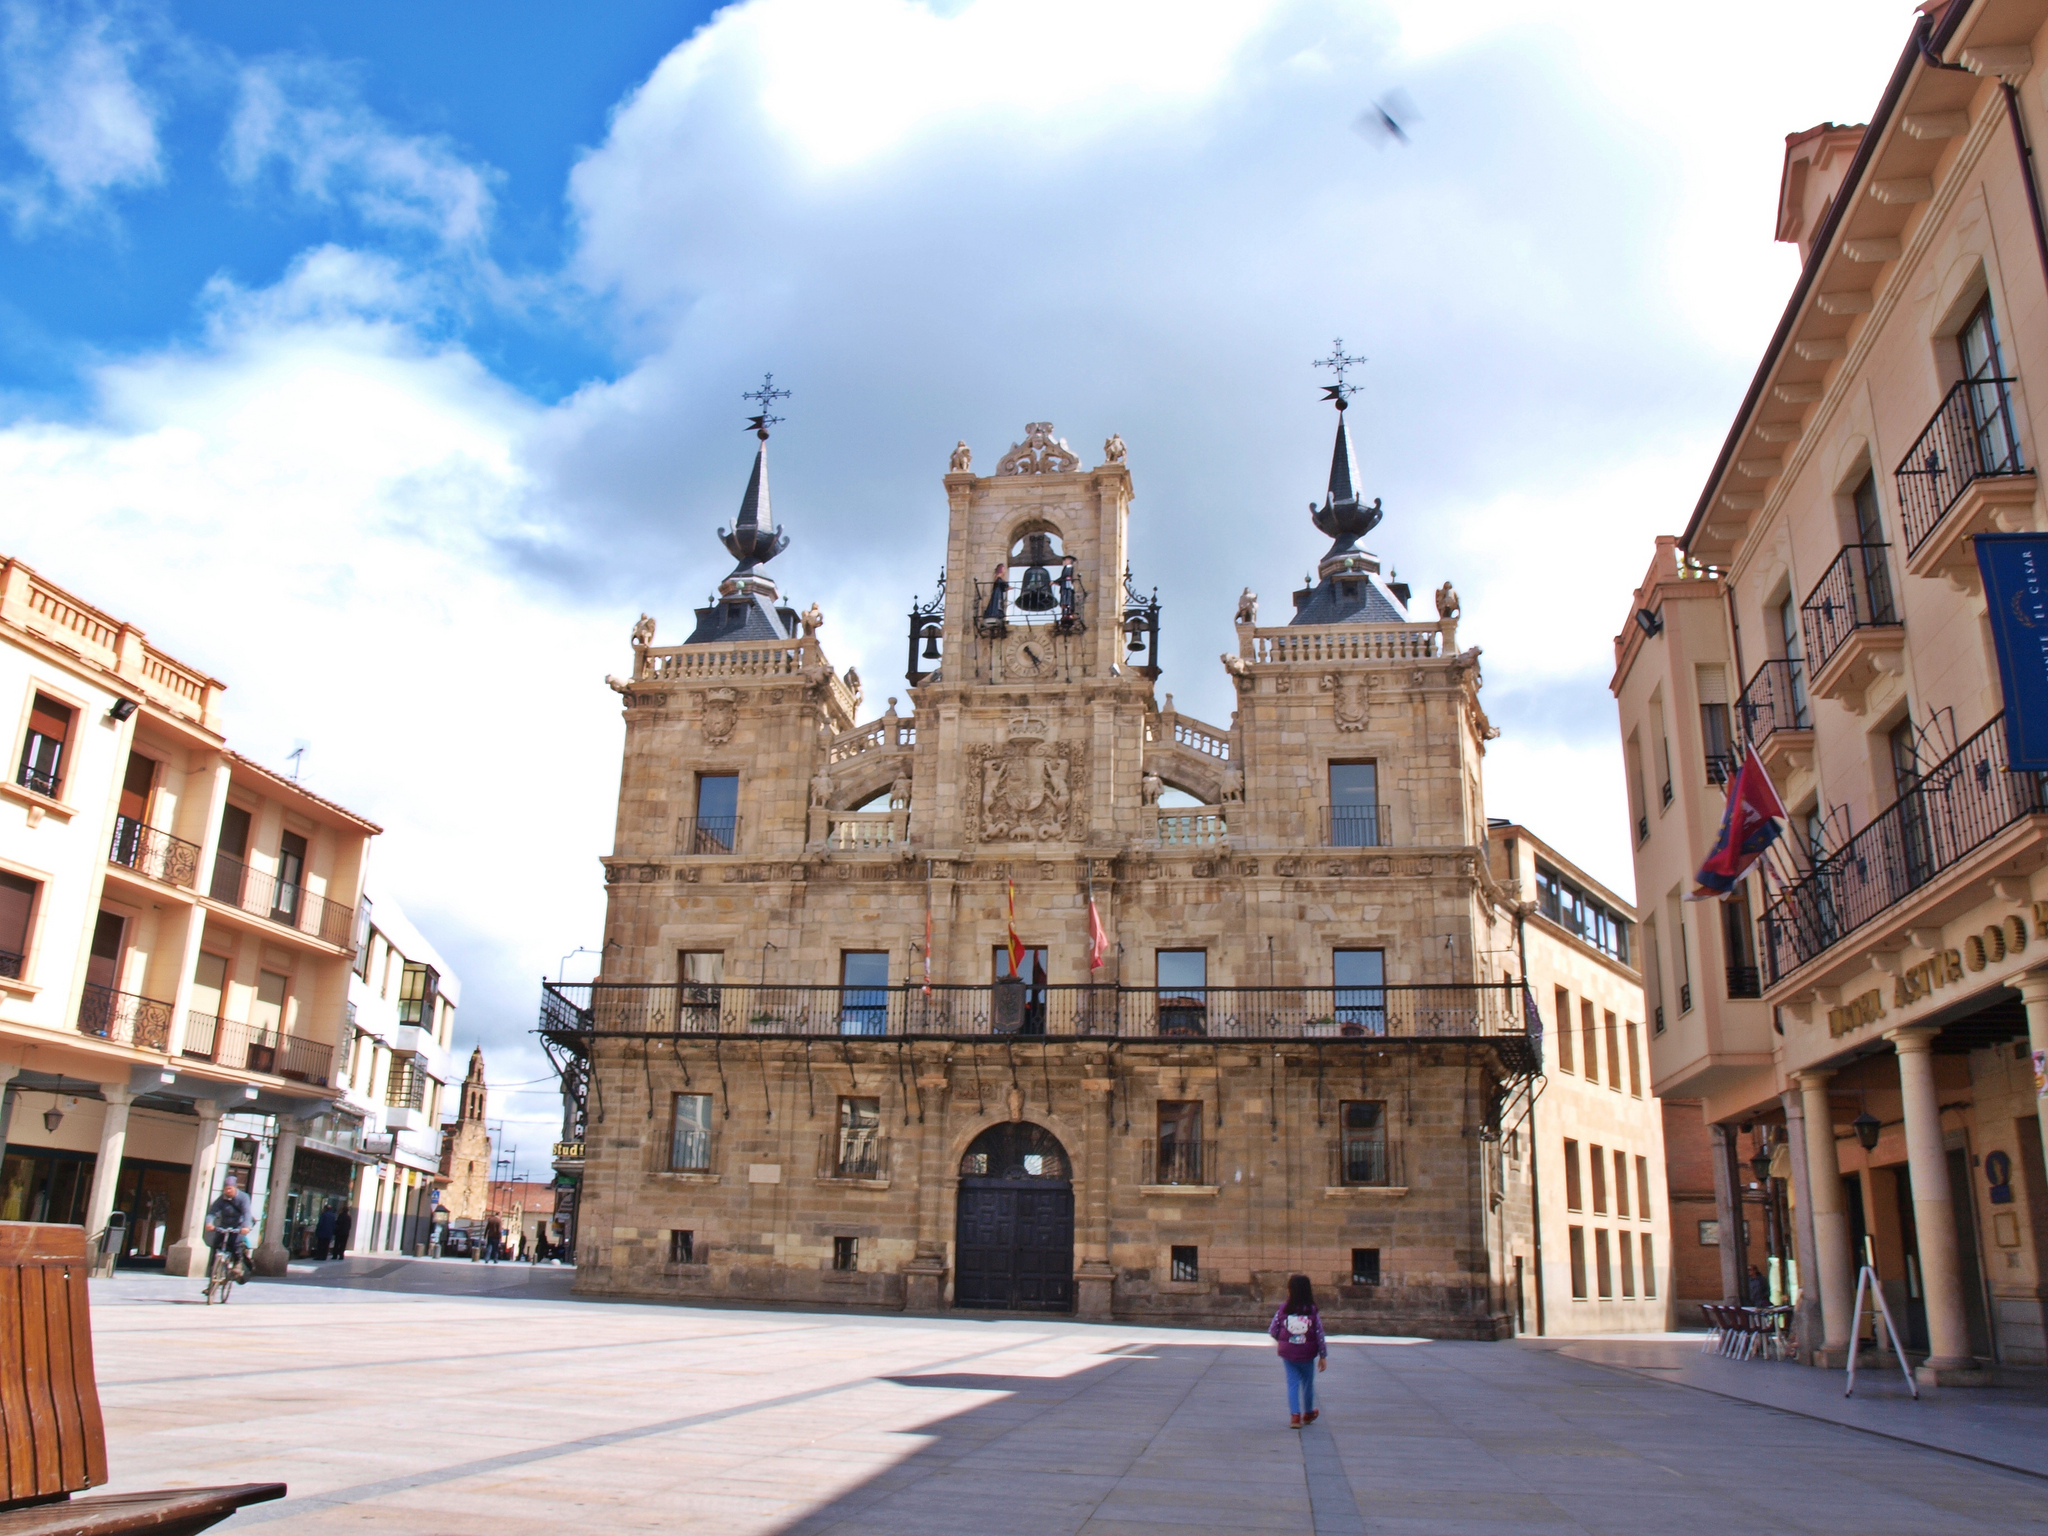 Mayor Square in Astorga